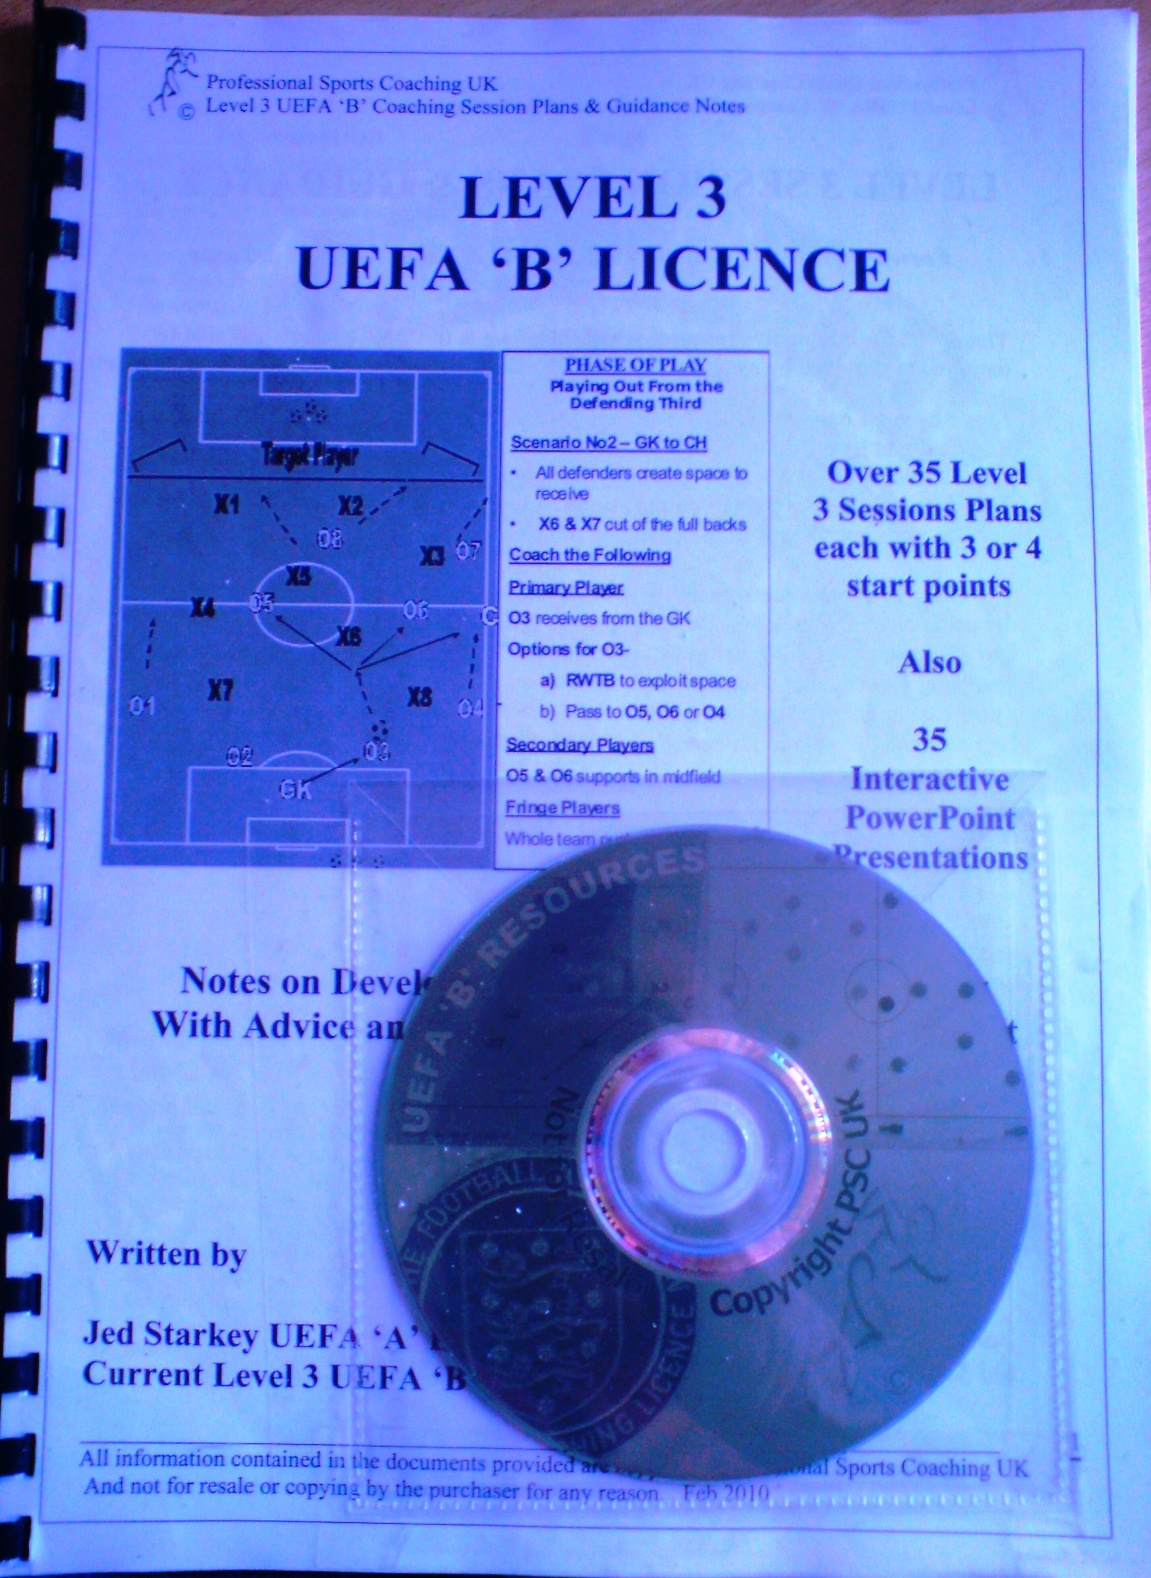 www prosoccercoachuk com uefa b coaching rh prosoccercoachuk com Business License uefa c licence manual